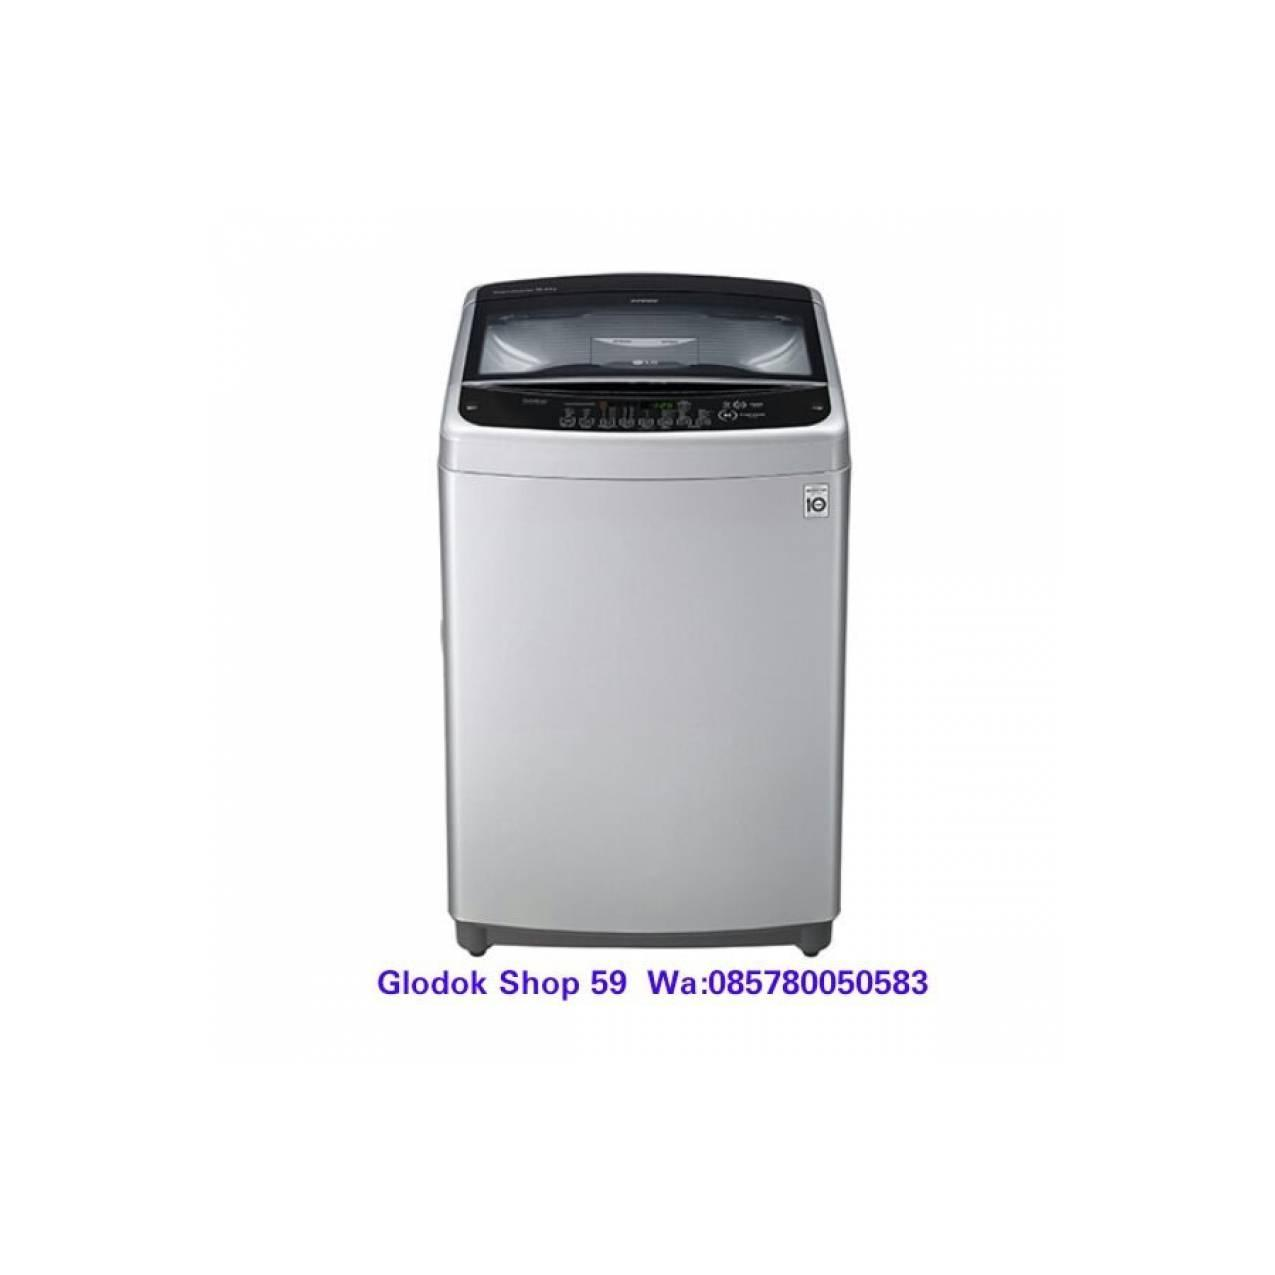 MESIN CUCI LG 8 KG T-2108VSAM SMART INVERTER TOP LOADIN LAUNDRY NEW